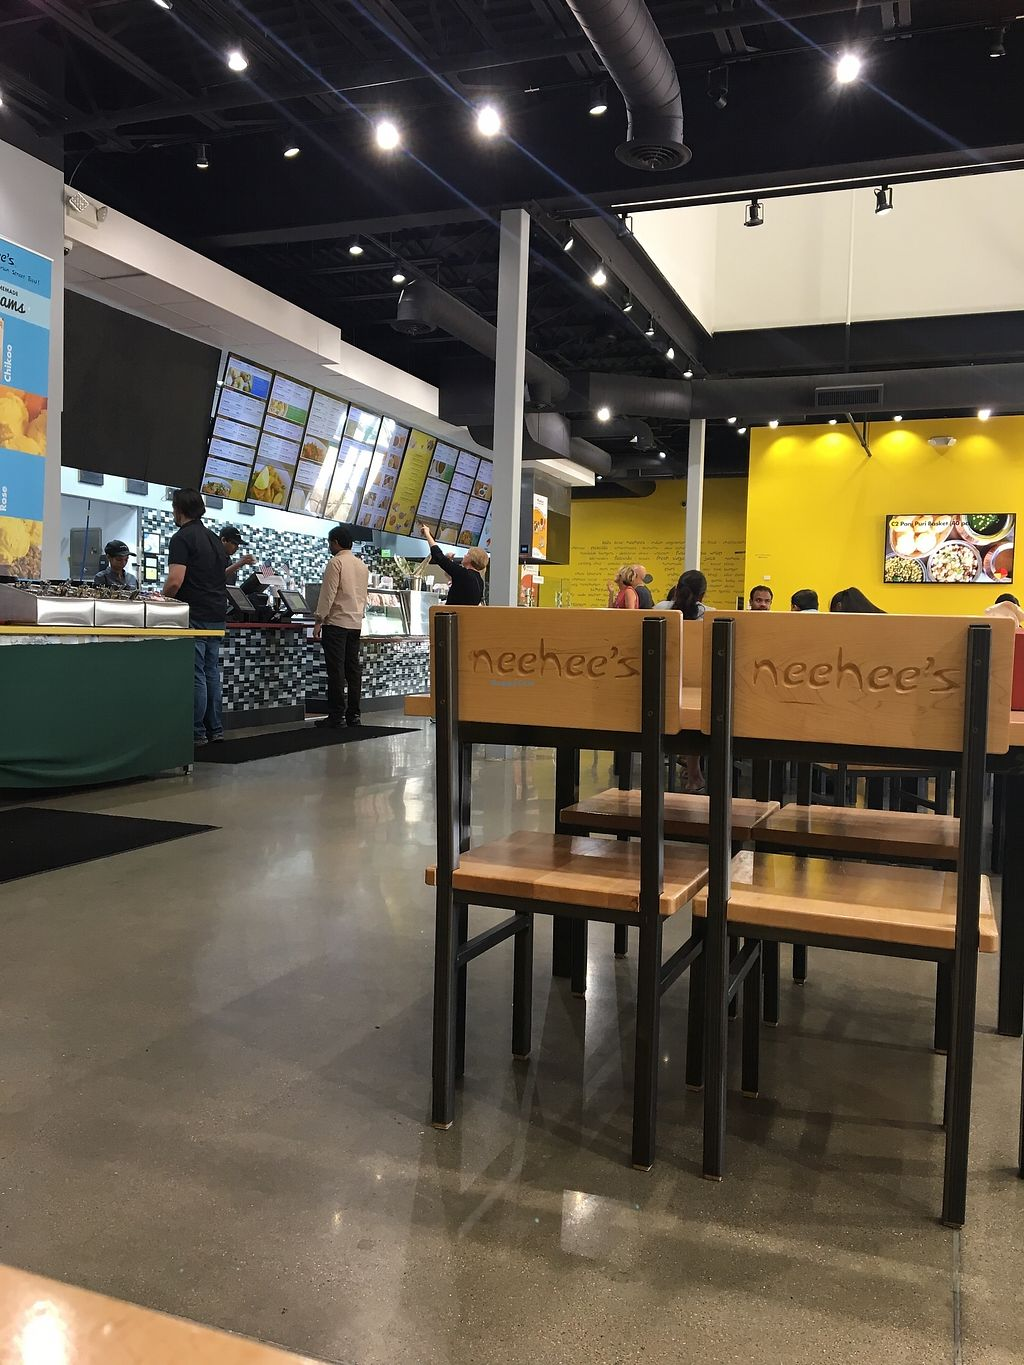 """Photo of Neehee's  by <a href=""""/members/profile/JacquelineKeena"""">JacquelineKeena</a> <br/>Inside restaurant  <br/> September 16, 2017  - <a href='/contact/abuse/image/86956/305072'>Report</a>"""